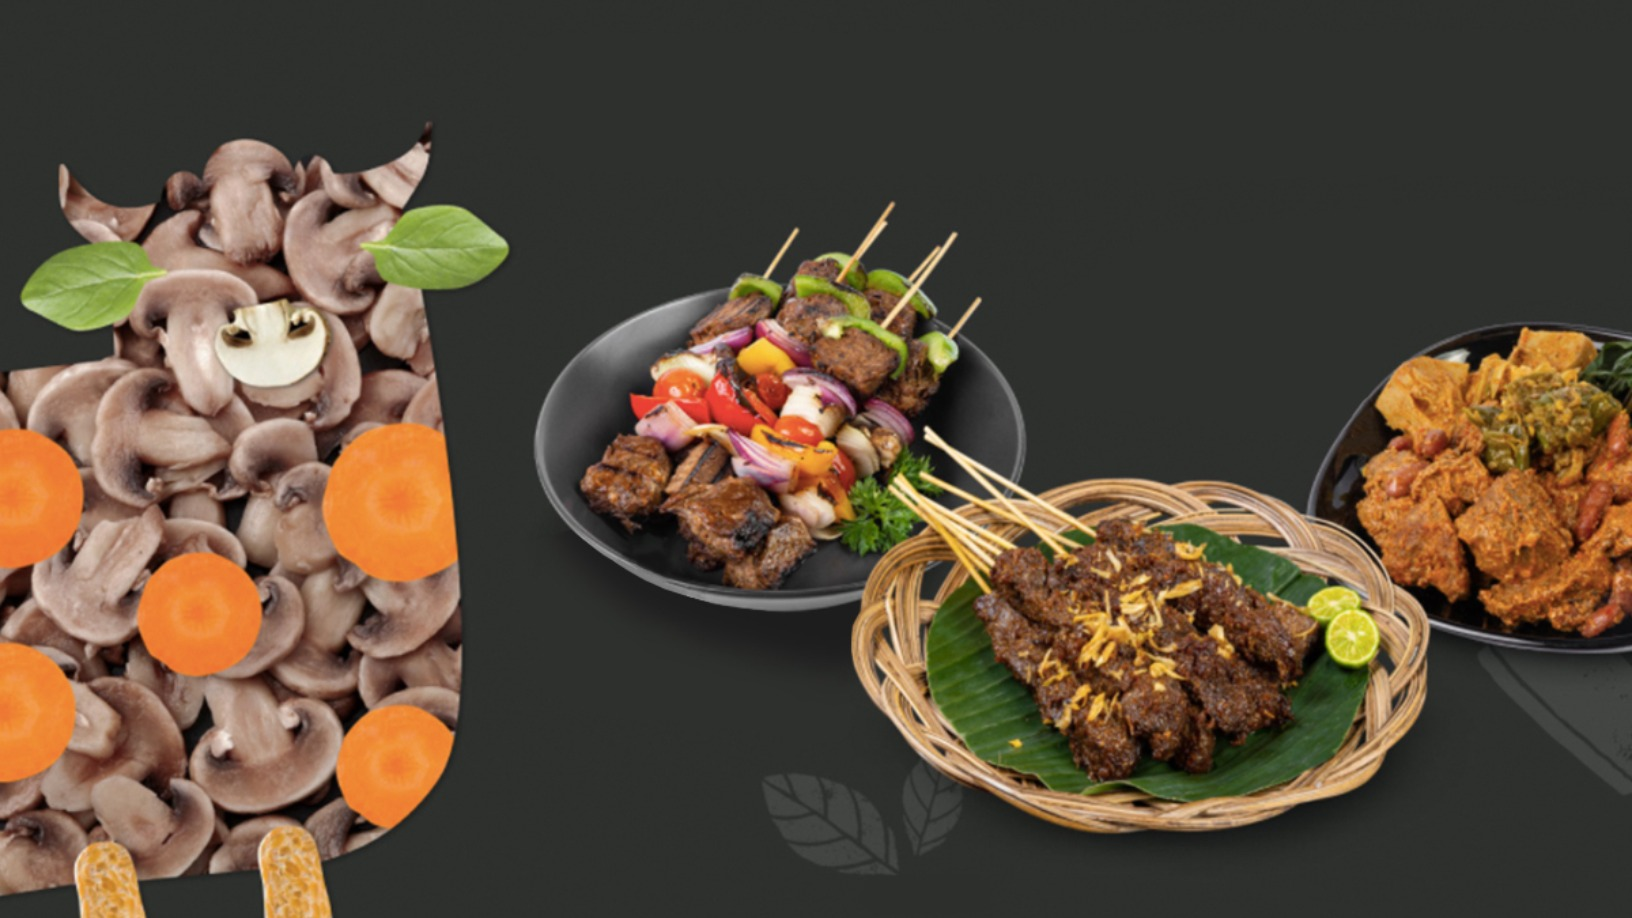 Indonesia's Green Rebel Foods to take its Asian-inspired plant-based meat regional